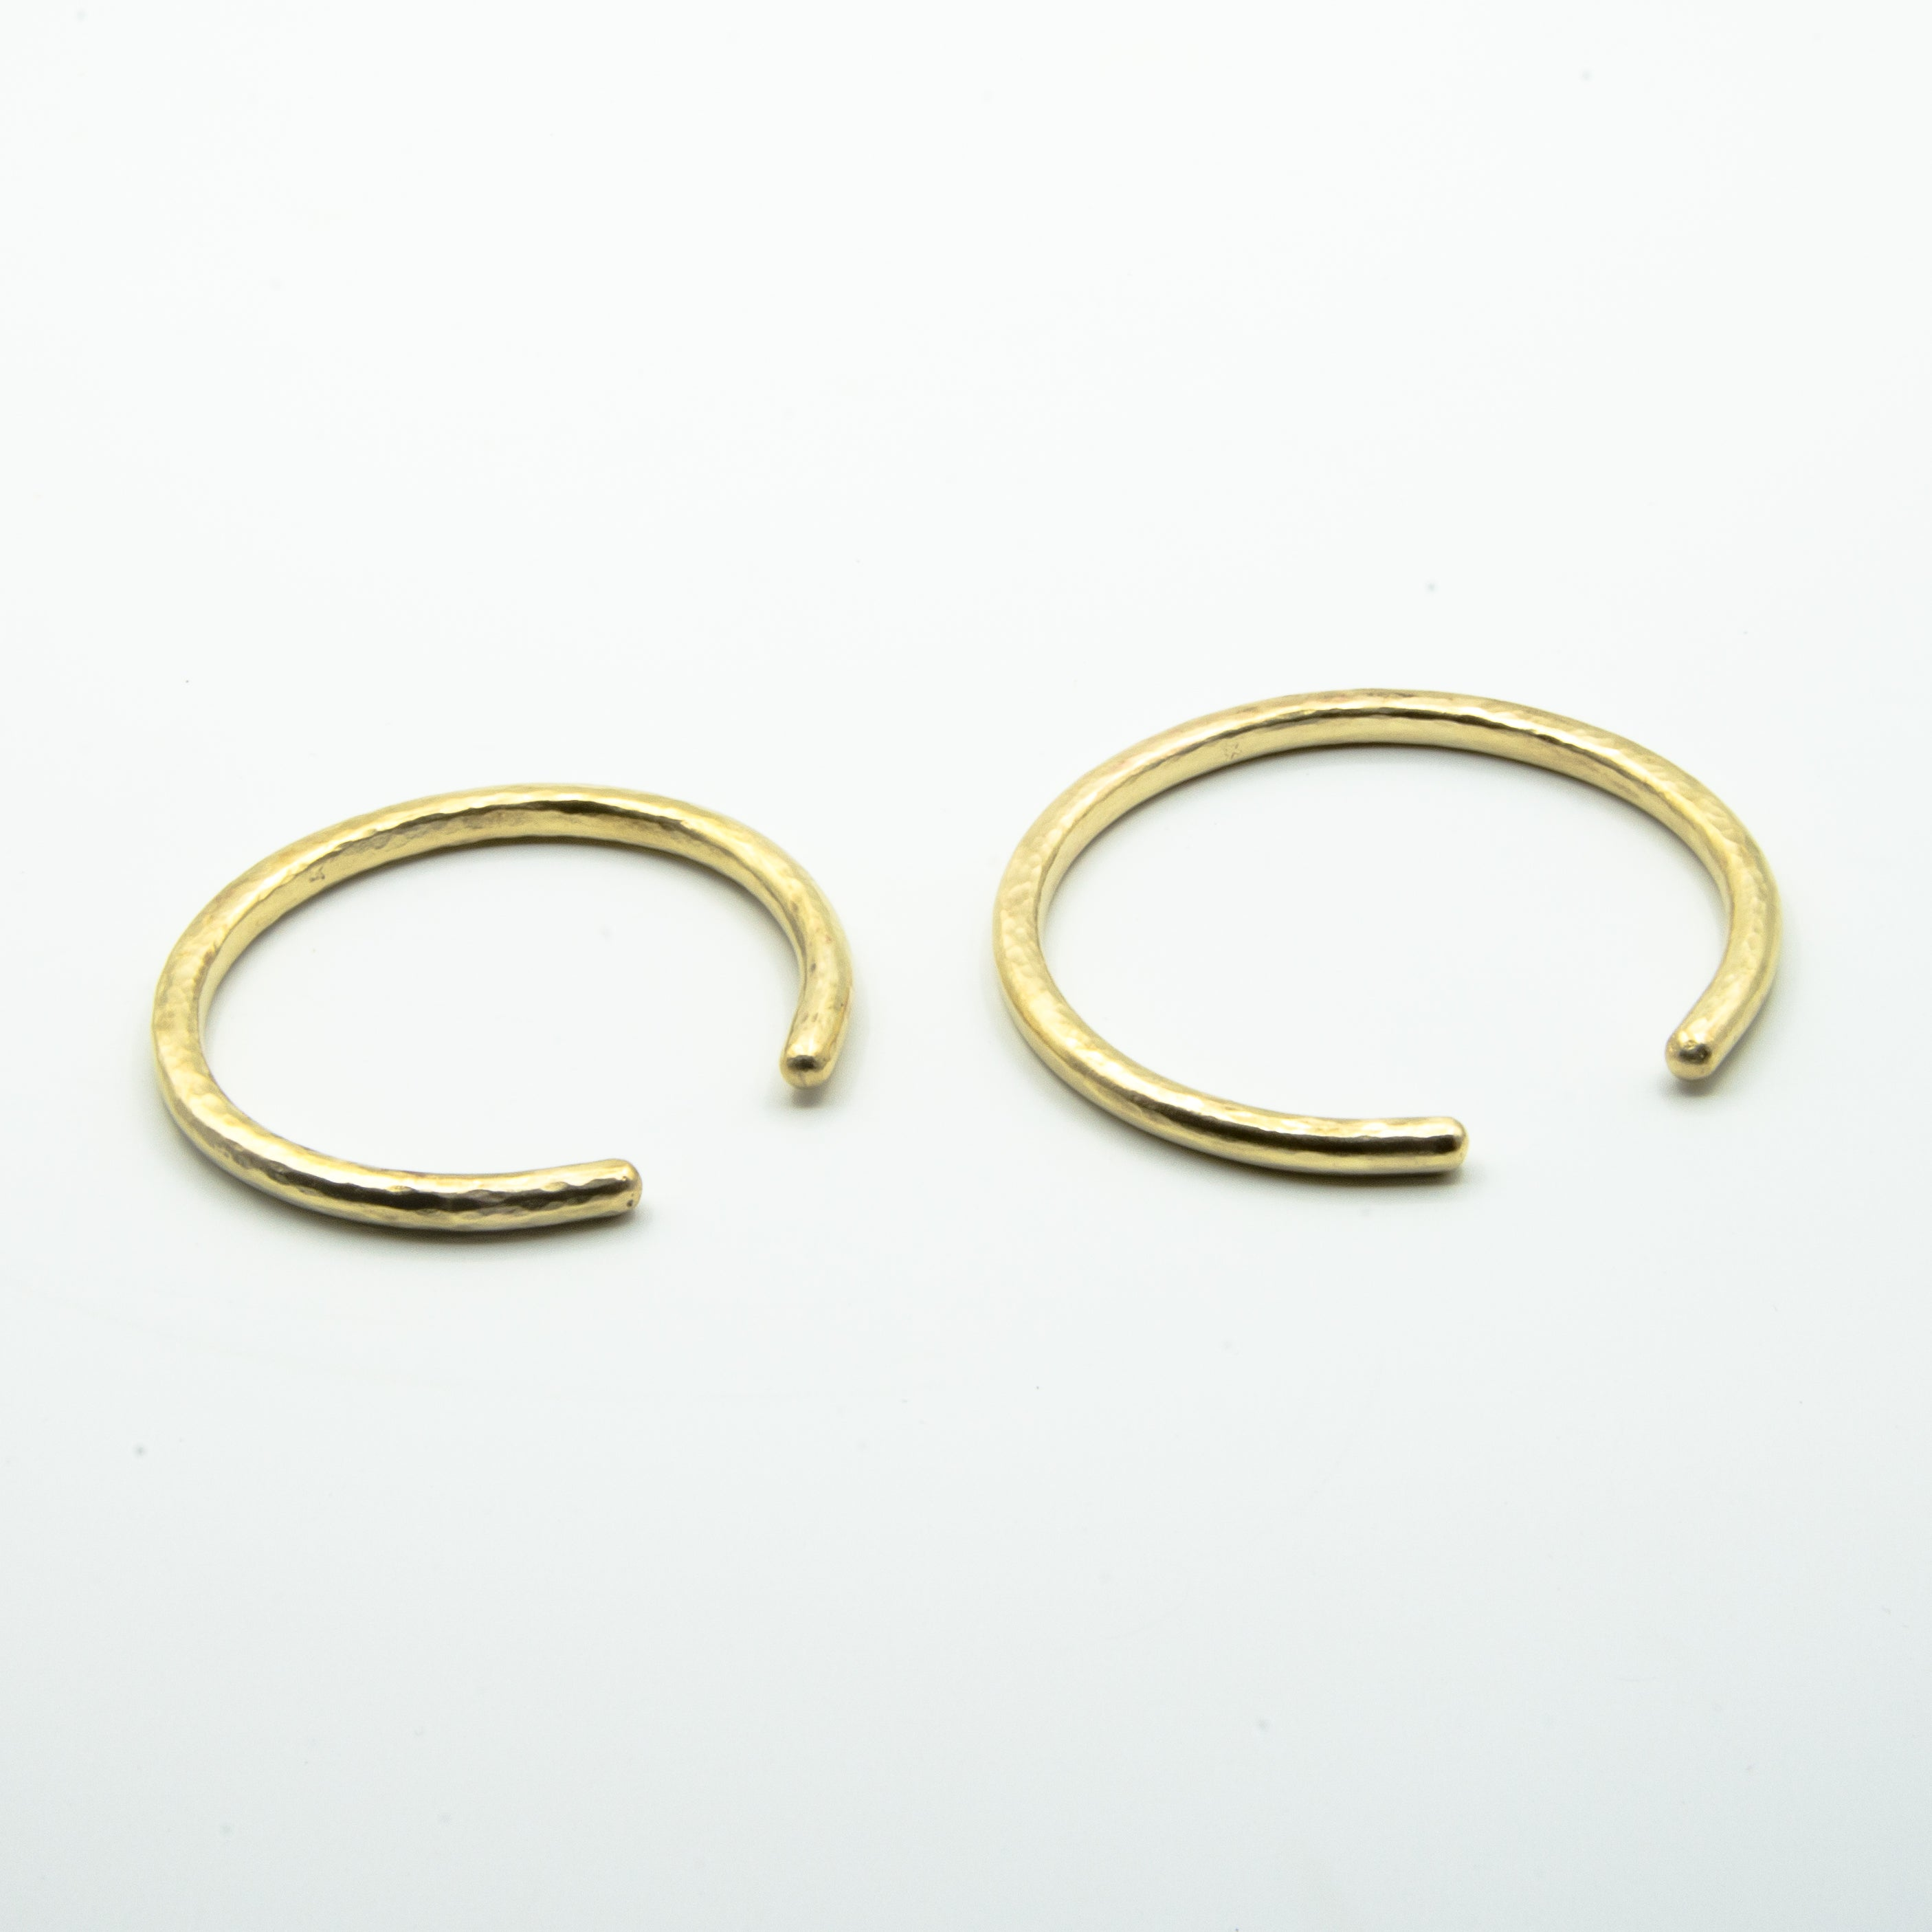 thick brass cuffs front view on white background, sizes small and big